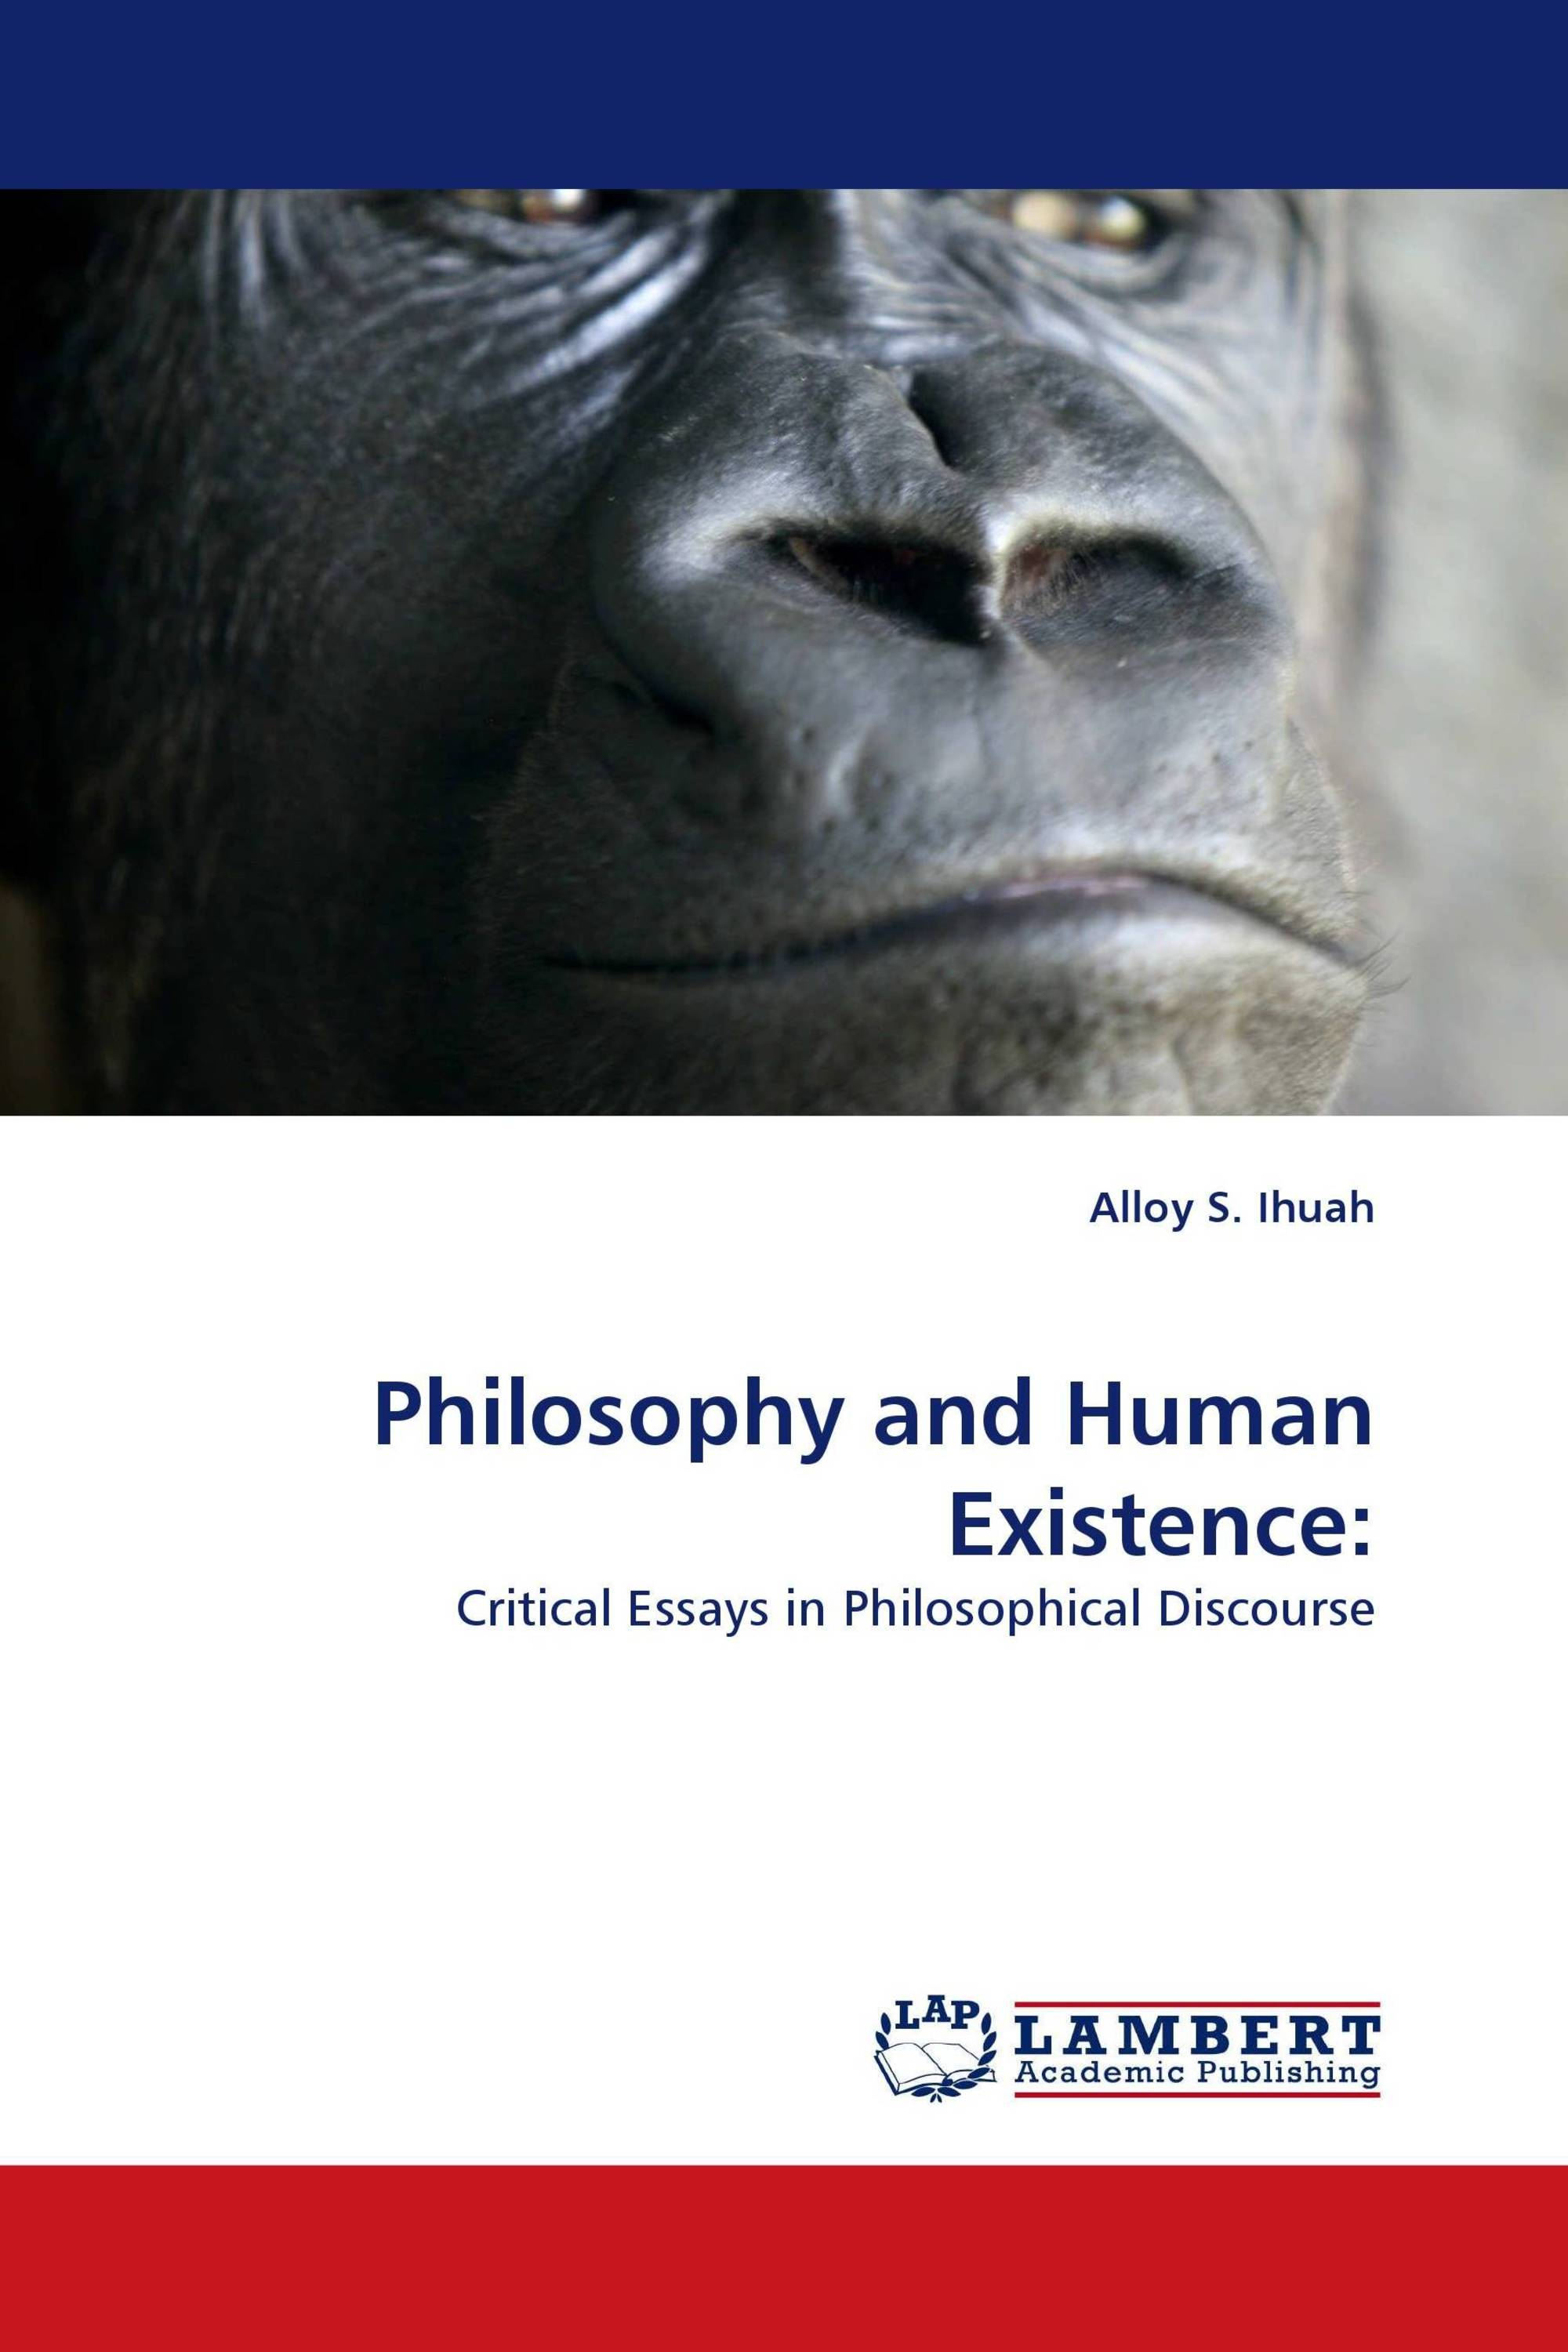 Philosophy and Human Existence: